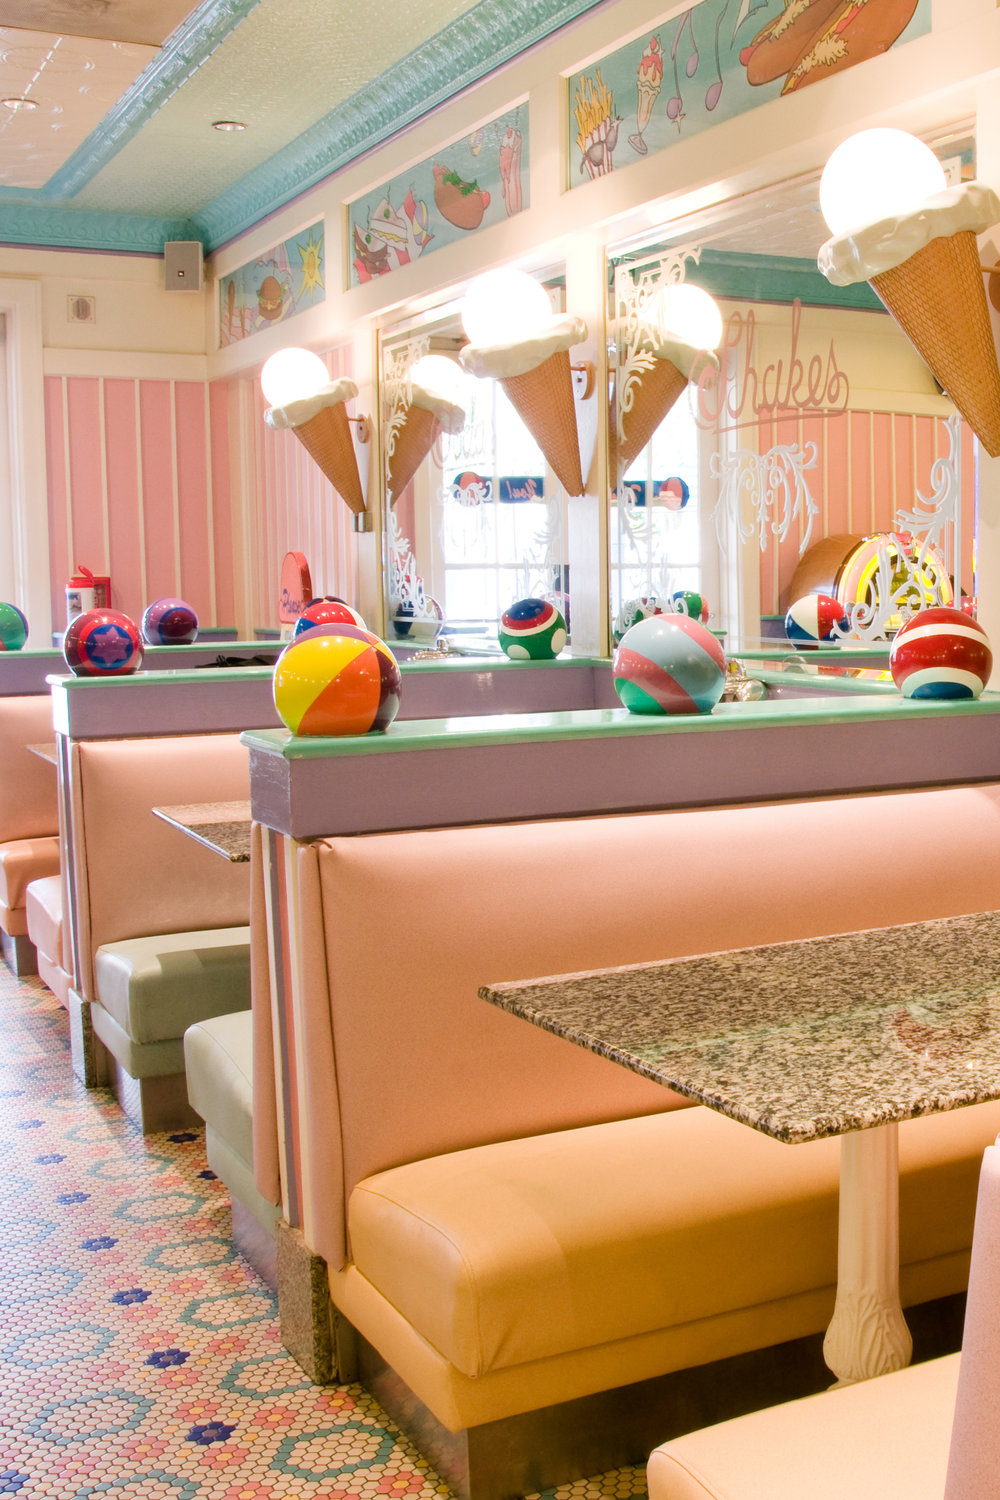 Best Disney Restaurants Beaches and Cream Soda Shop